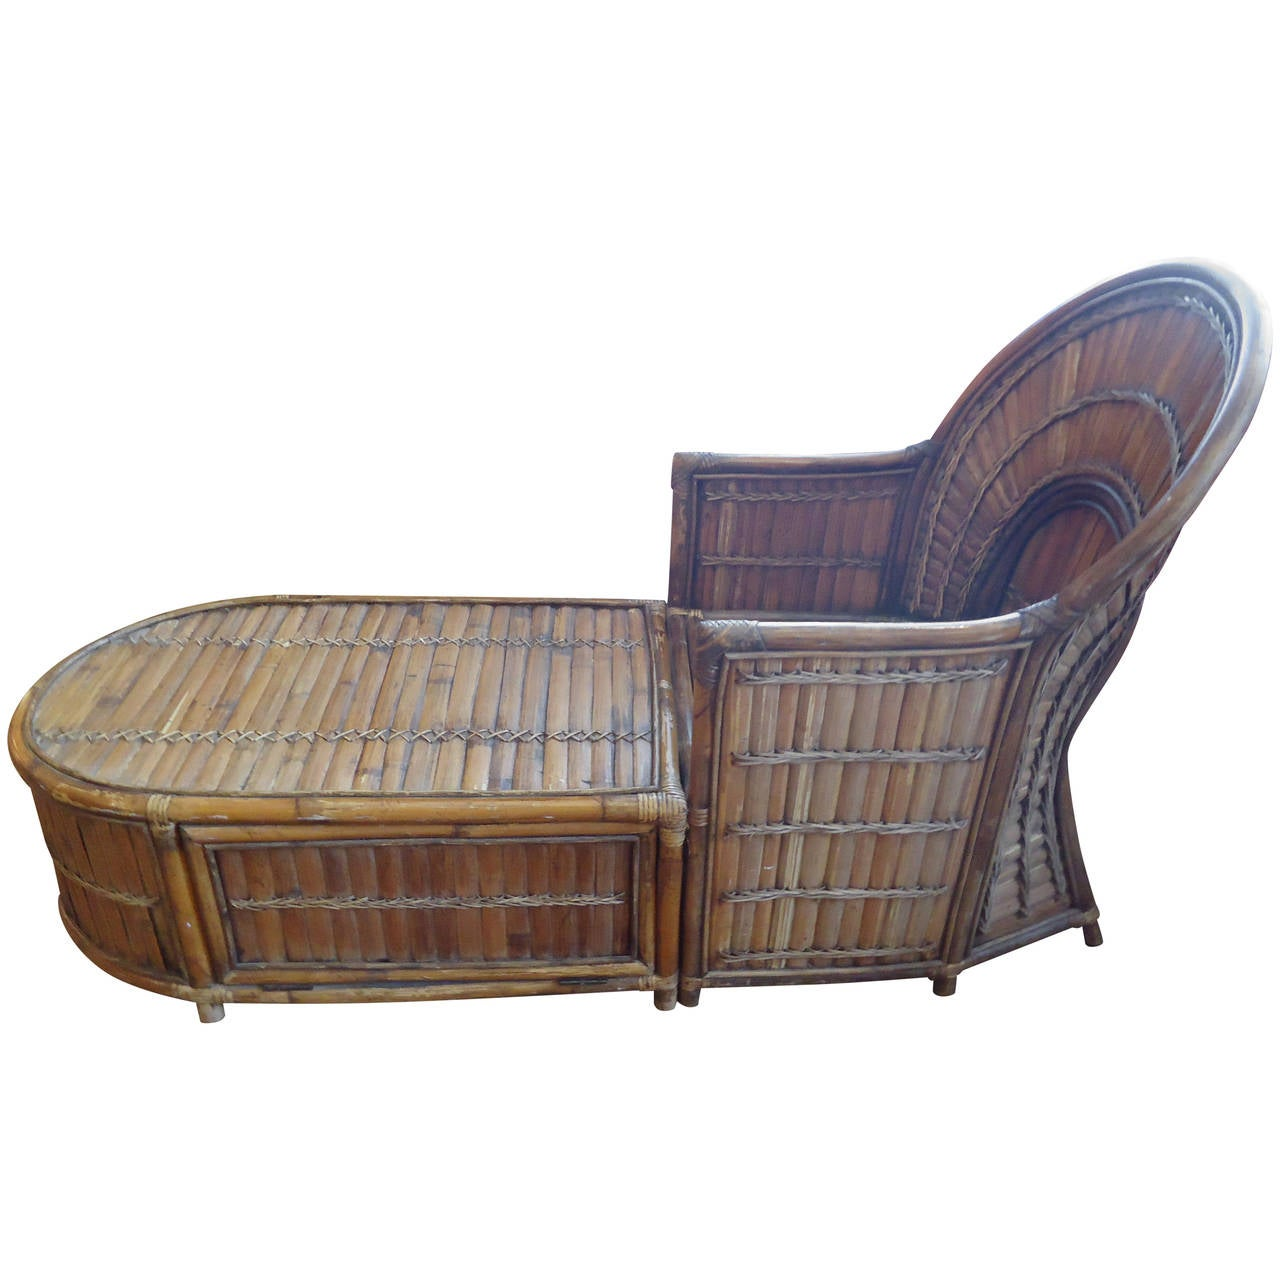 rare bamboo art deco style chaise lounge at 1stdibs